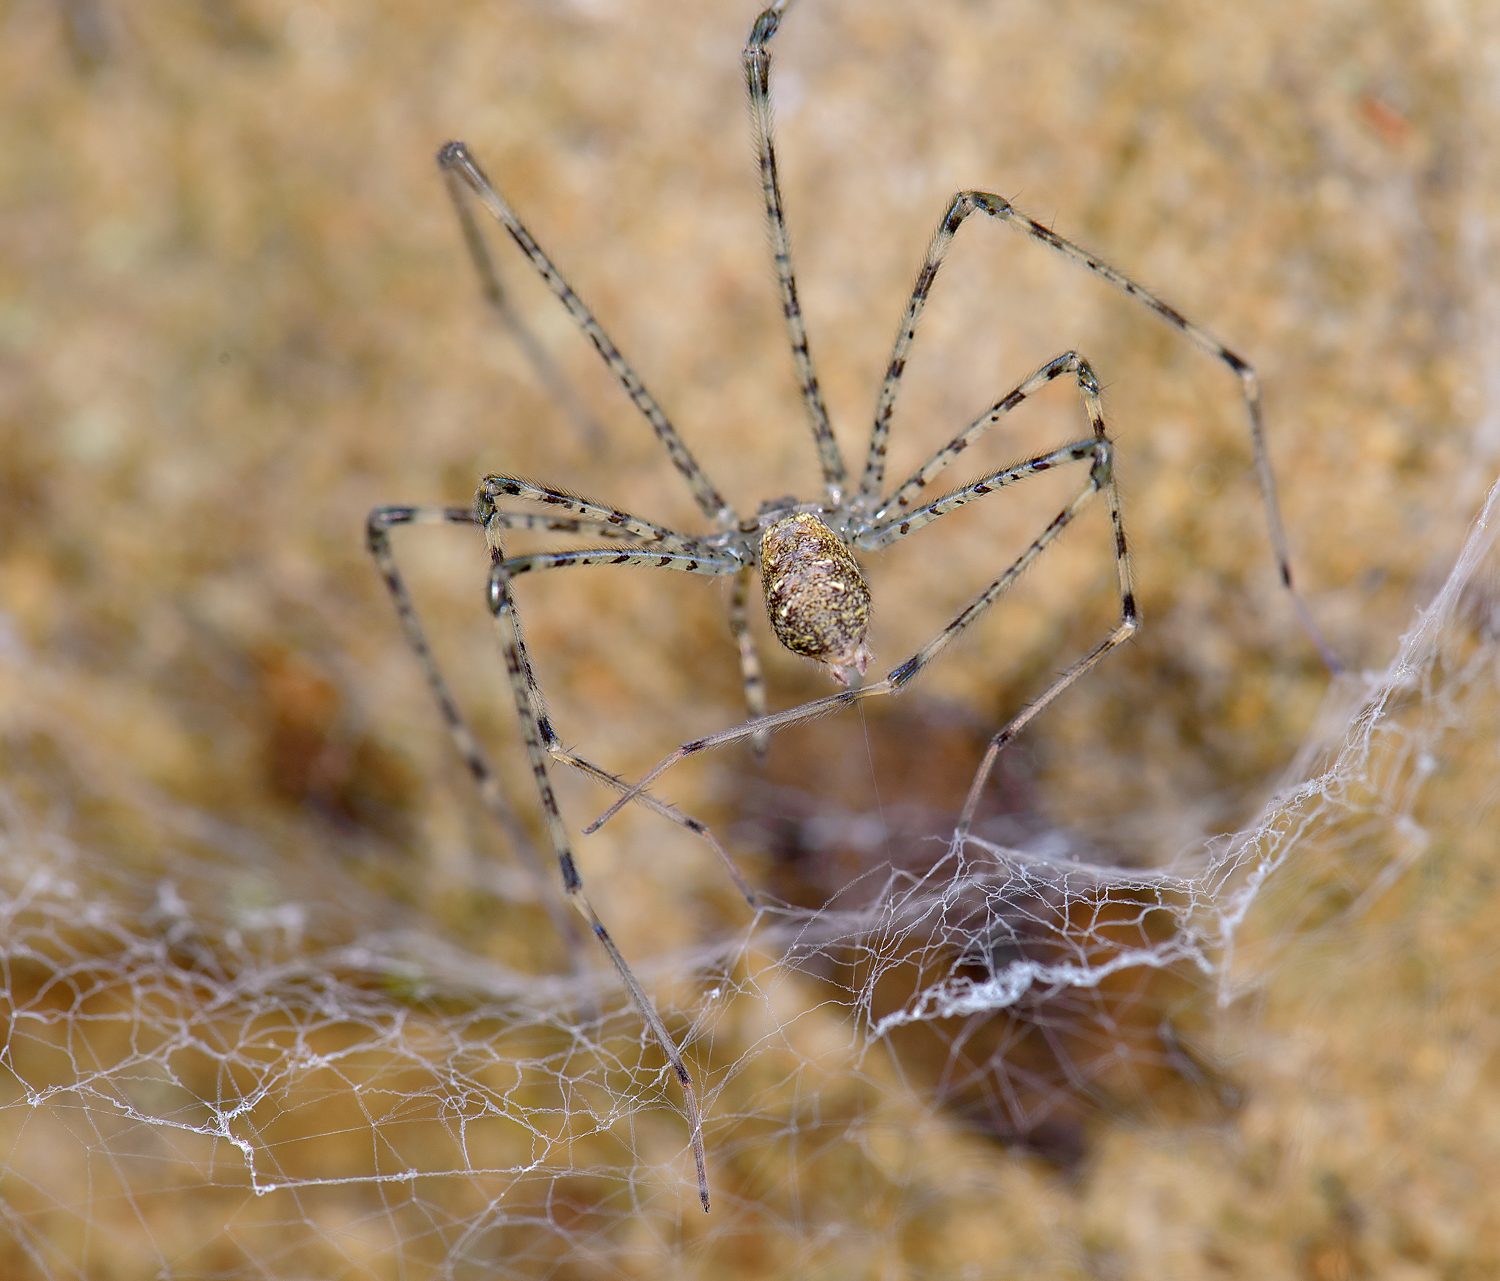 Real Monstrosities: Lampshade Spider